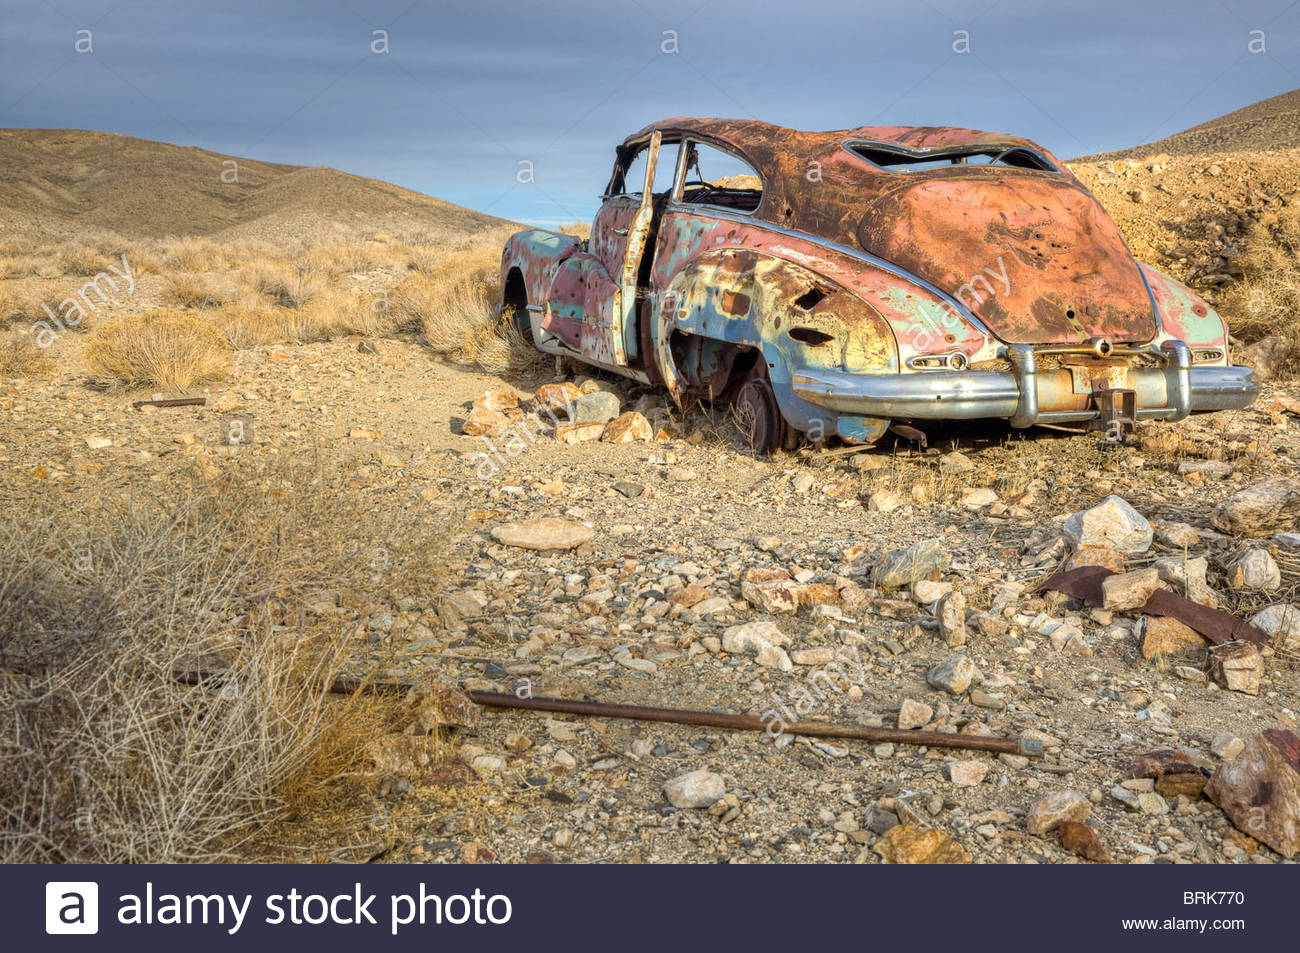 An antique car sits abandoned and rusting in Death Valley. - Stock Image